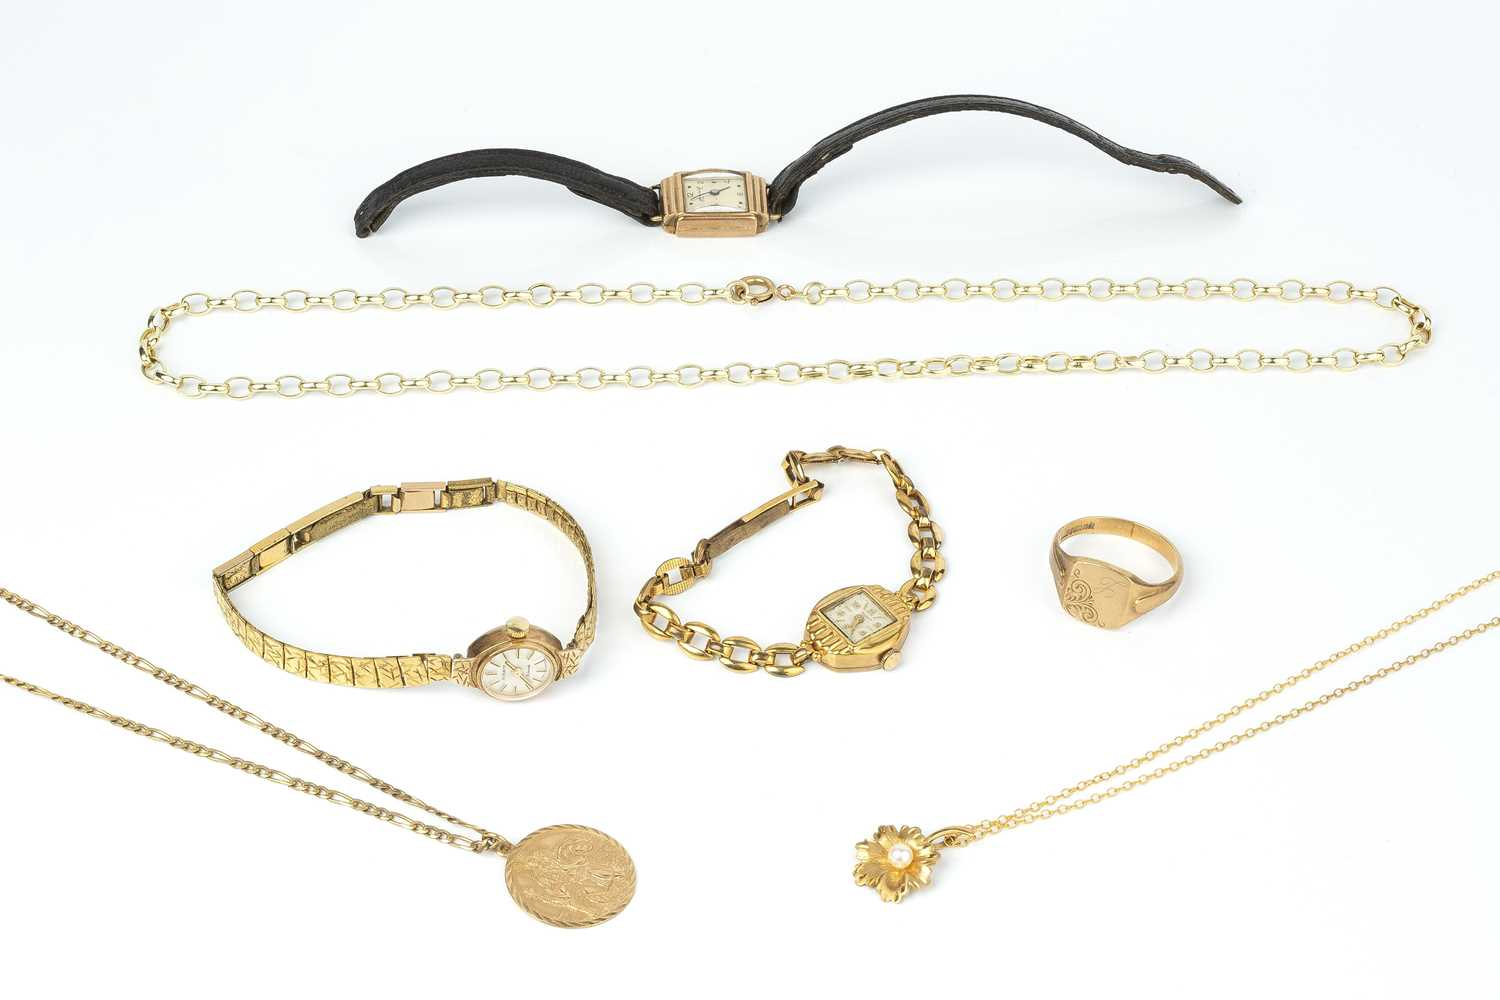 A collection of jewellery, comprising a 9ct gold St Christopher pendant on chain, a 9ct gold and